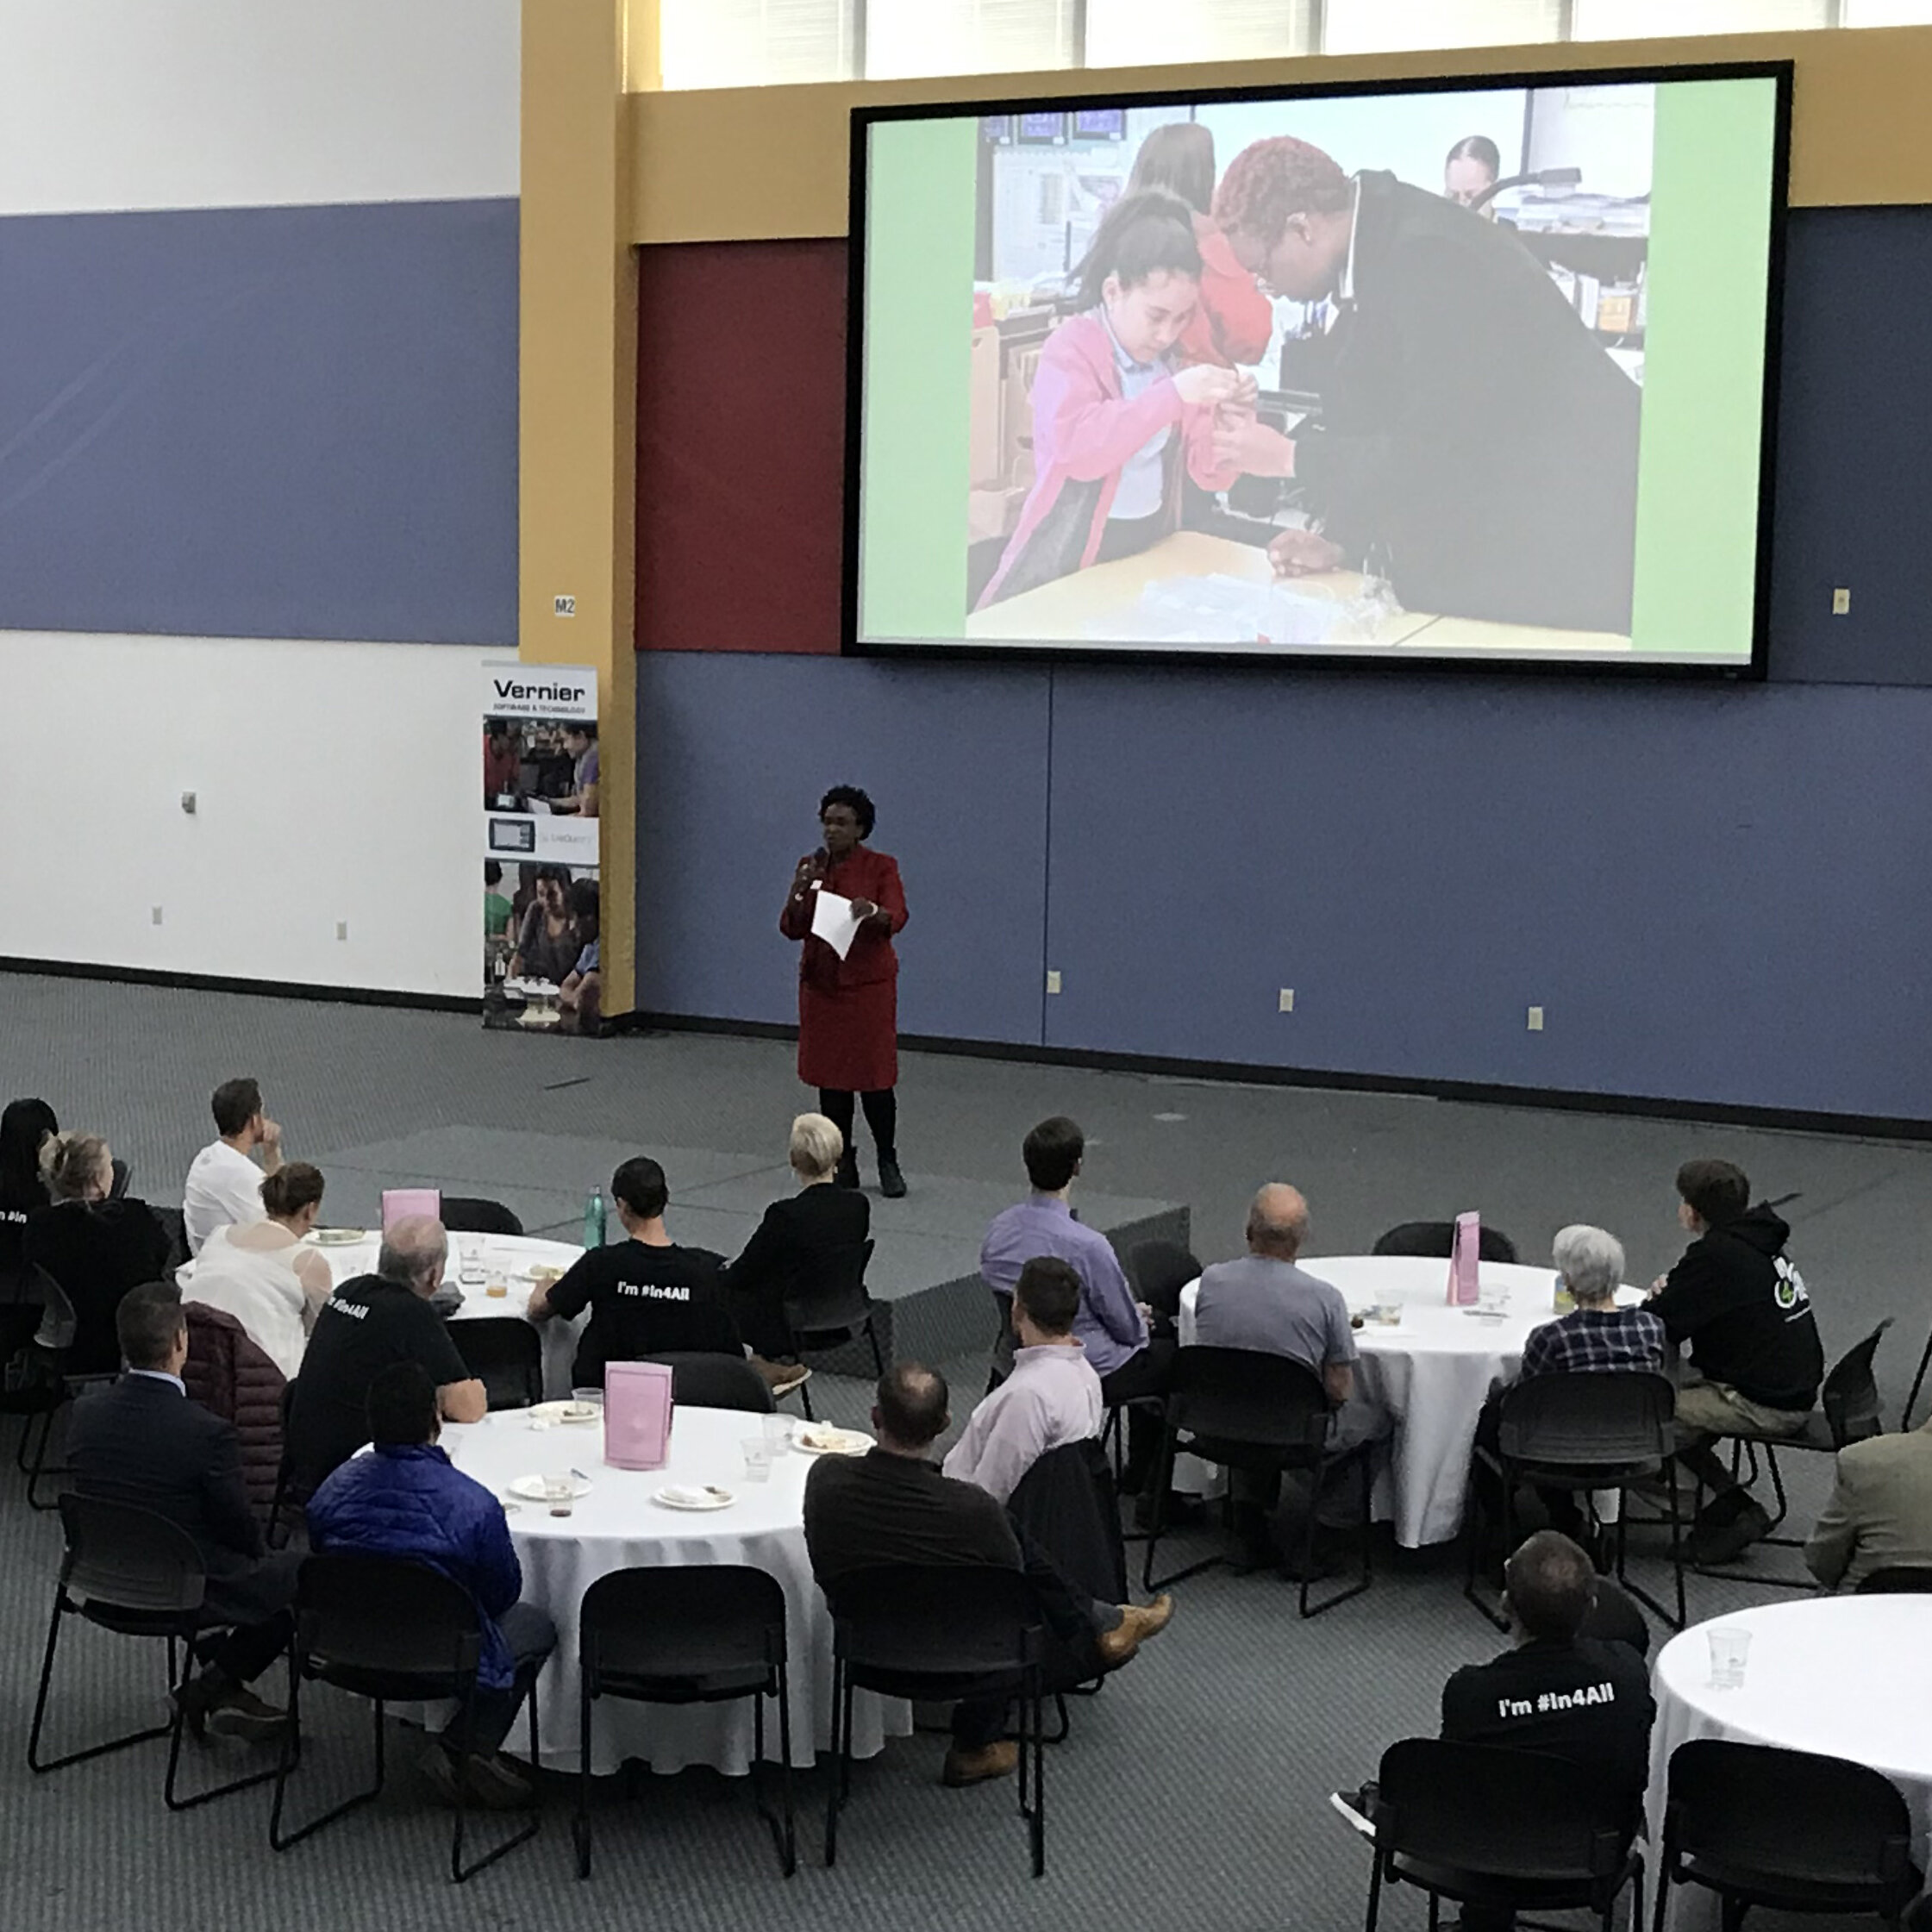 Kimberly Howard shares her story of encountering racial issues and the systemic barriers students face